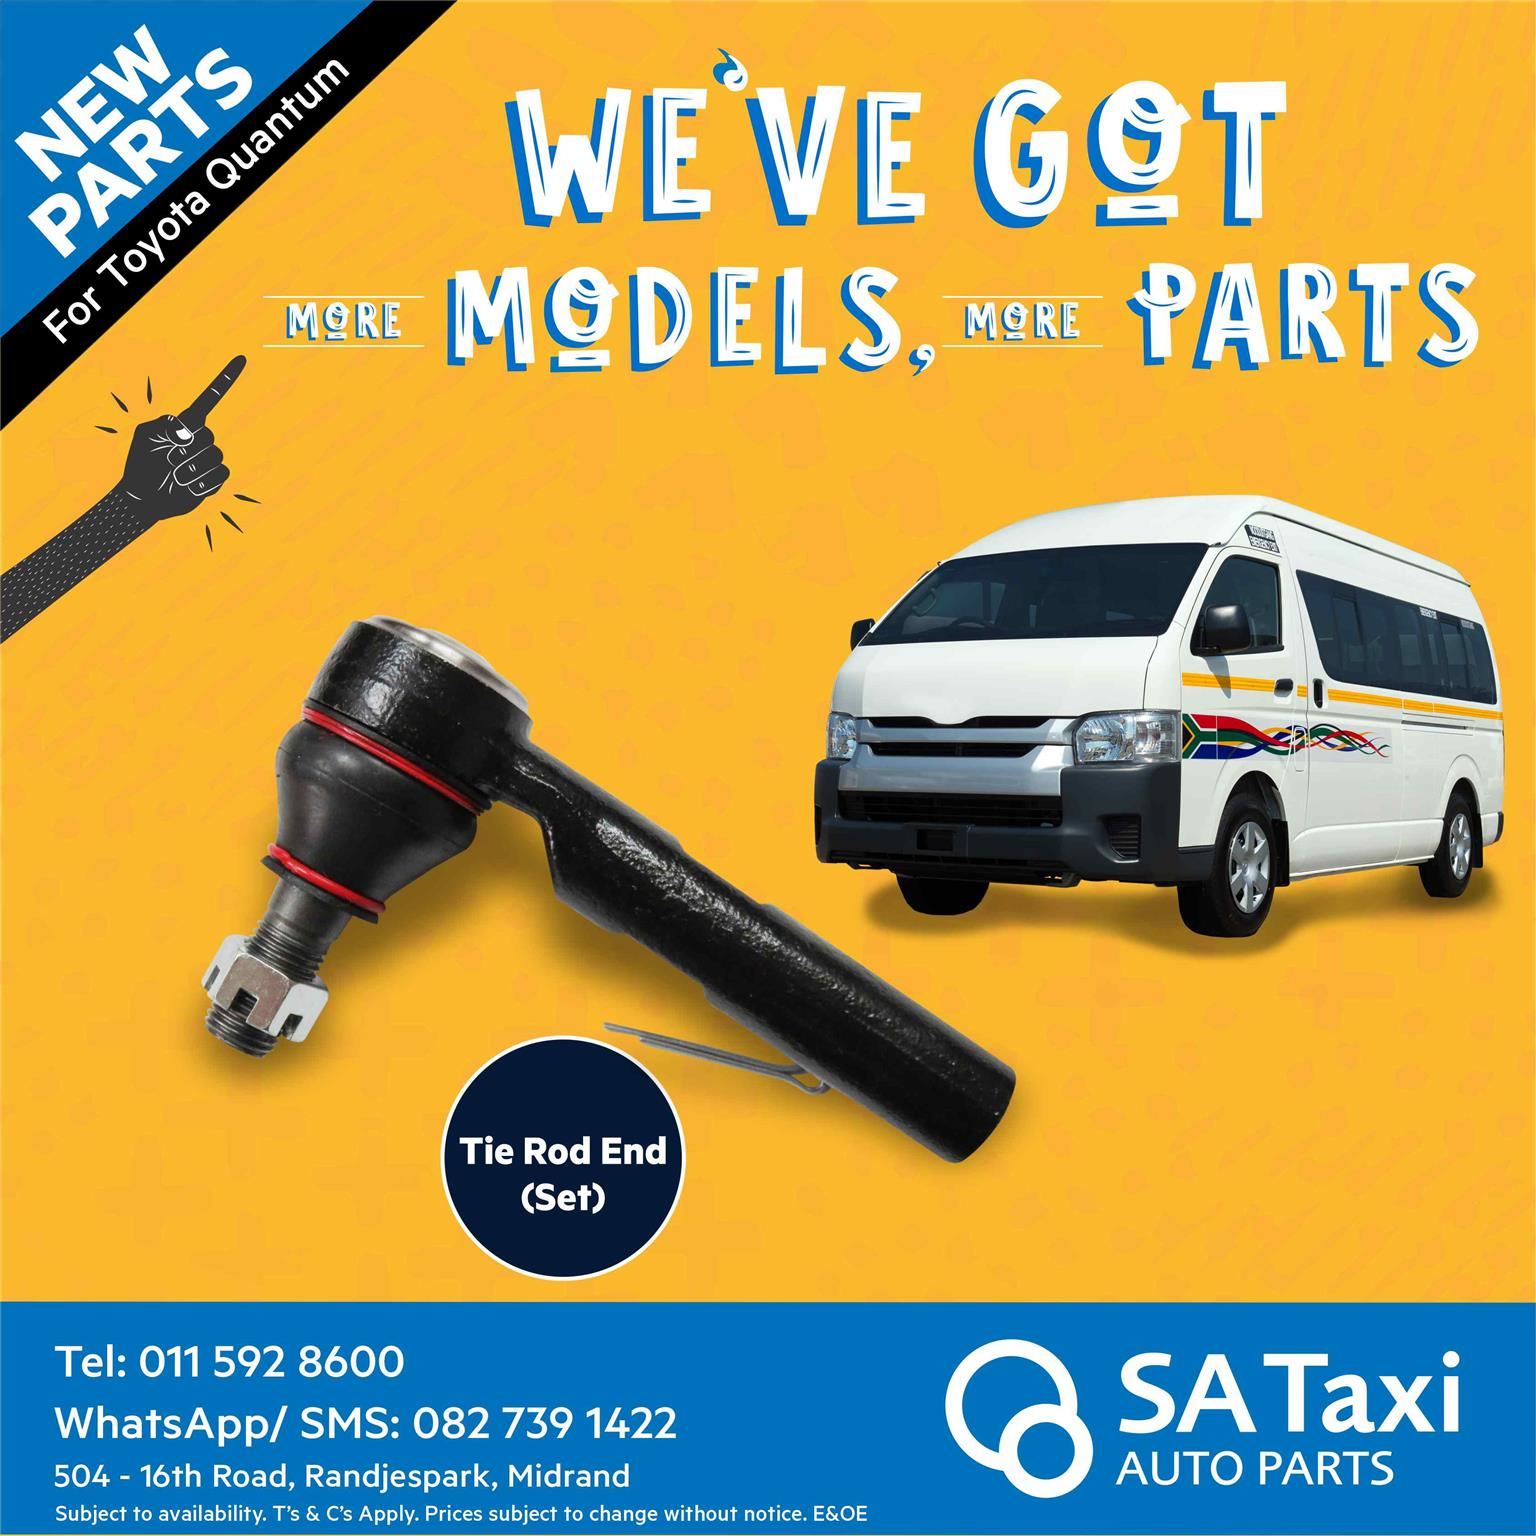 New Tie Rod End Set suitable for Toyota Quantum - SA Taxi Auto Parts quality spares